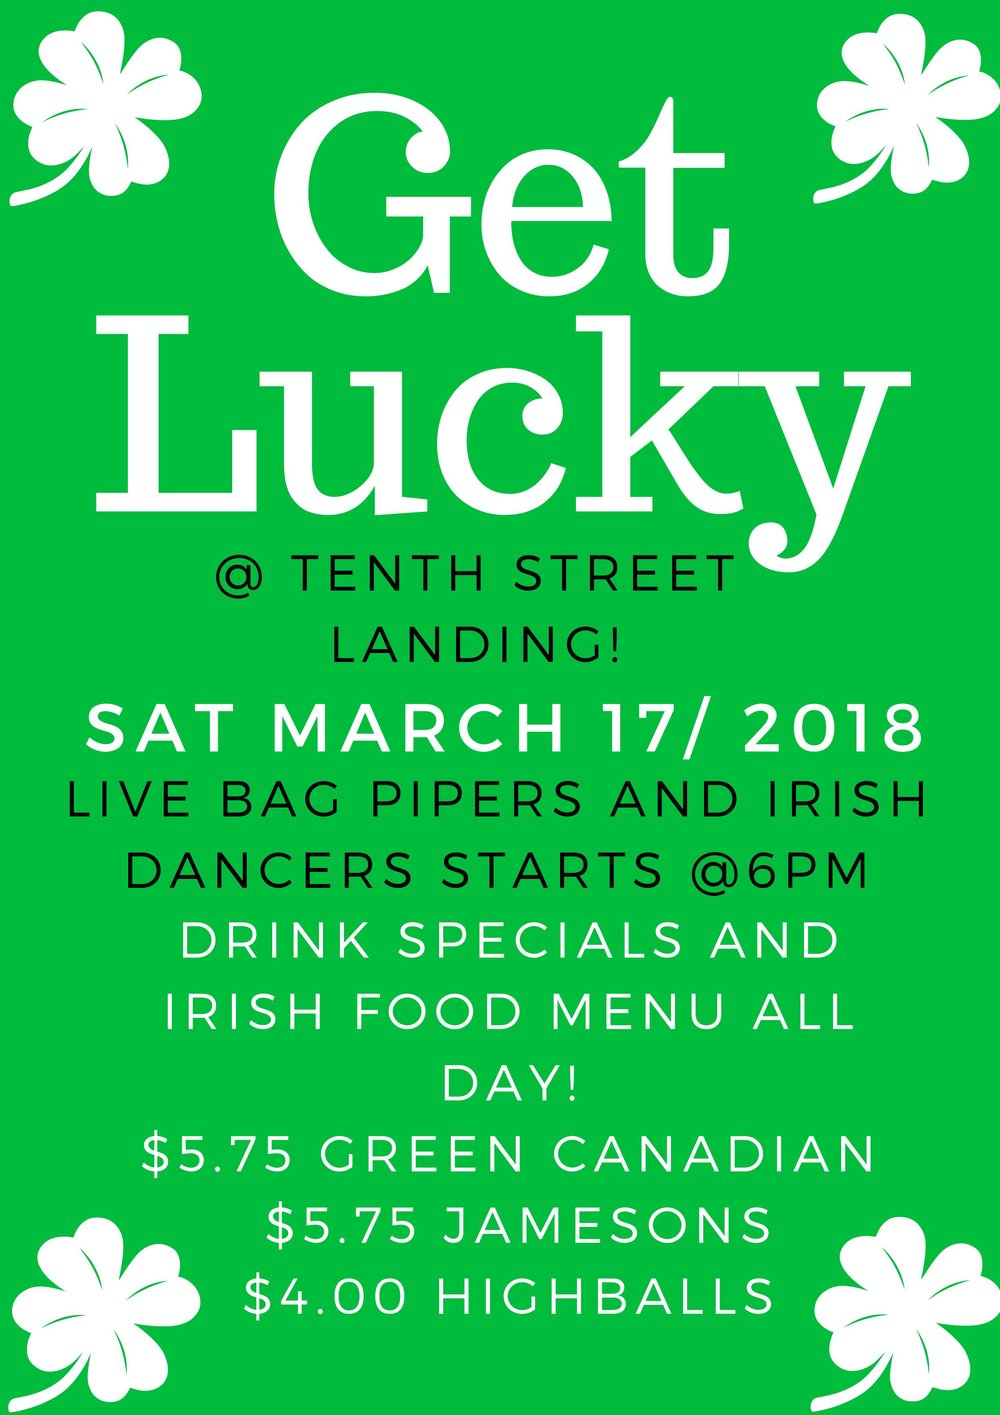 Simple St. Patrick's Day Event Flyer_000001.jpg